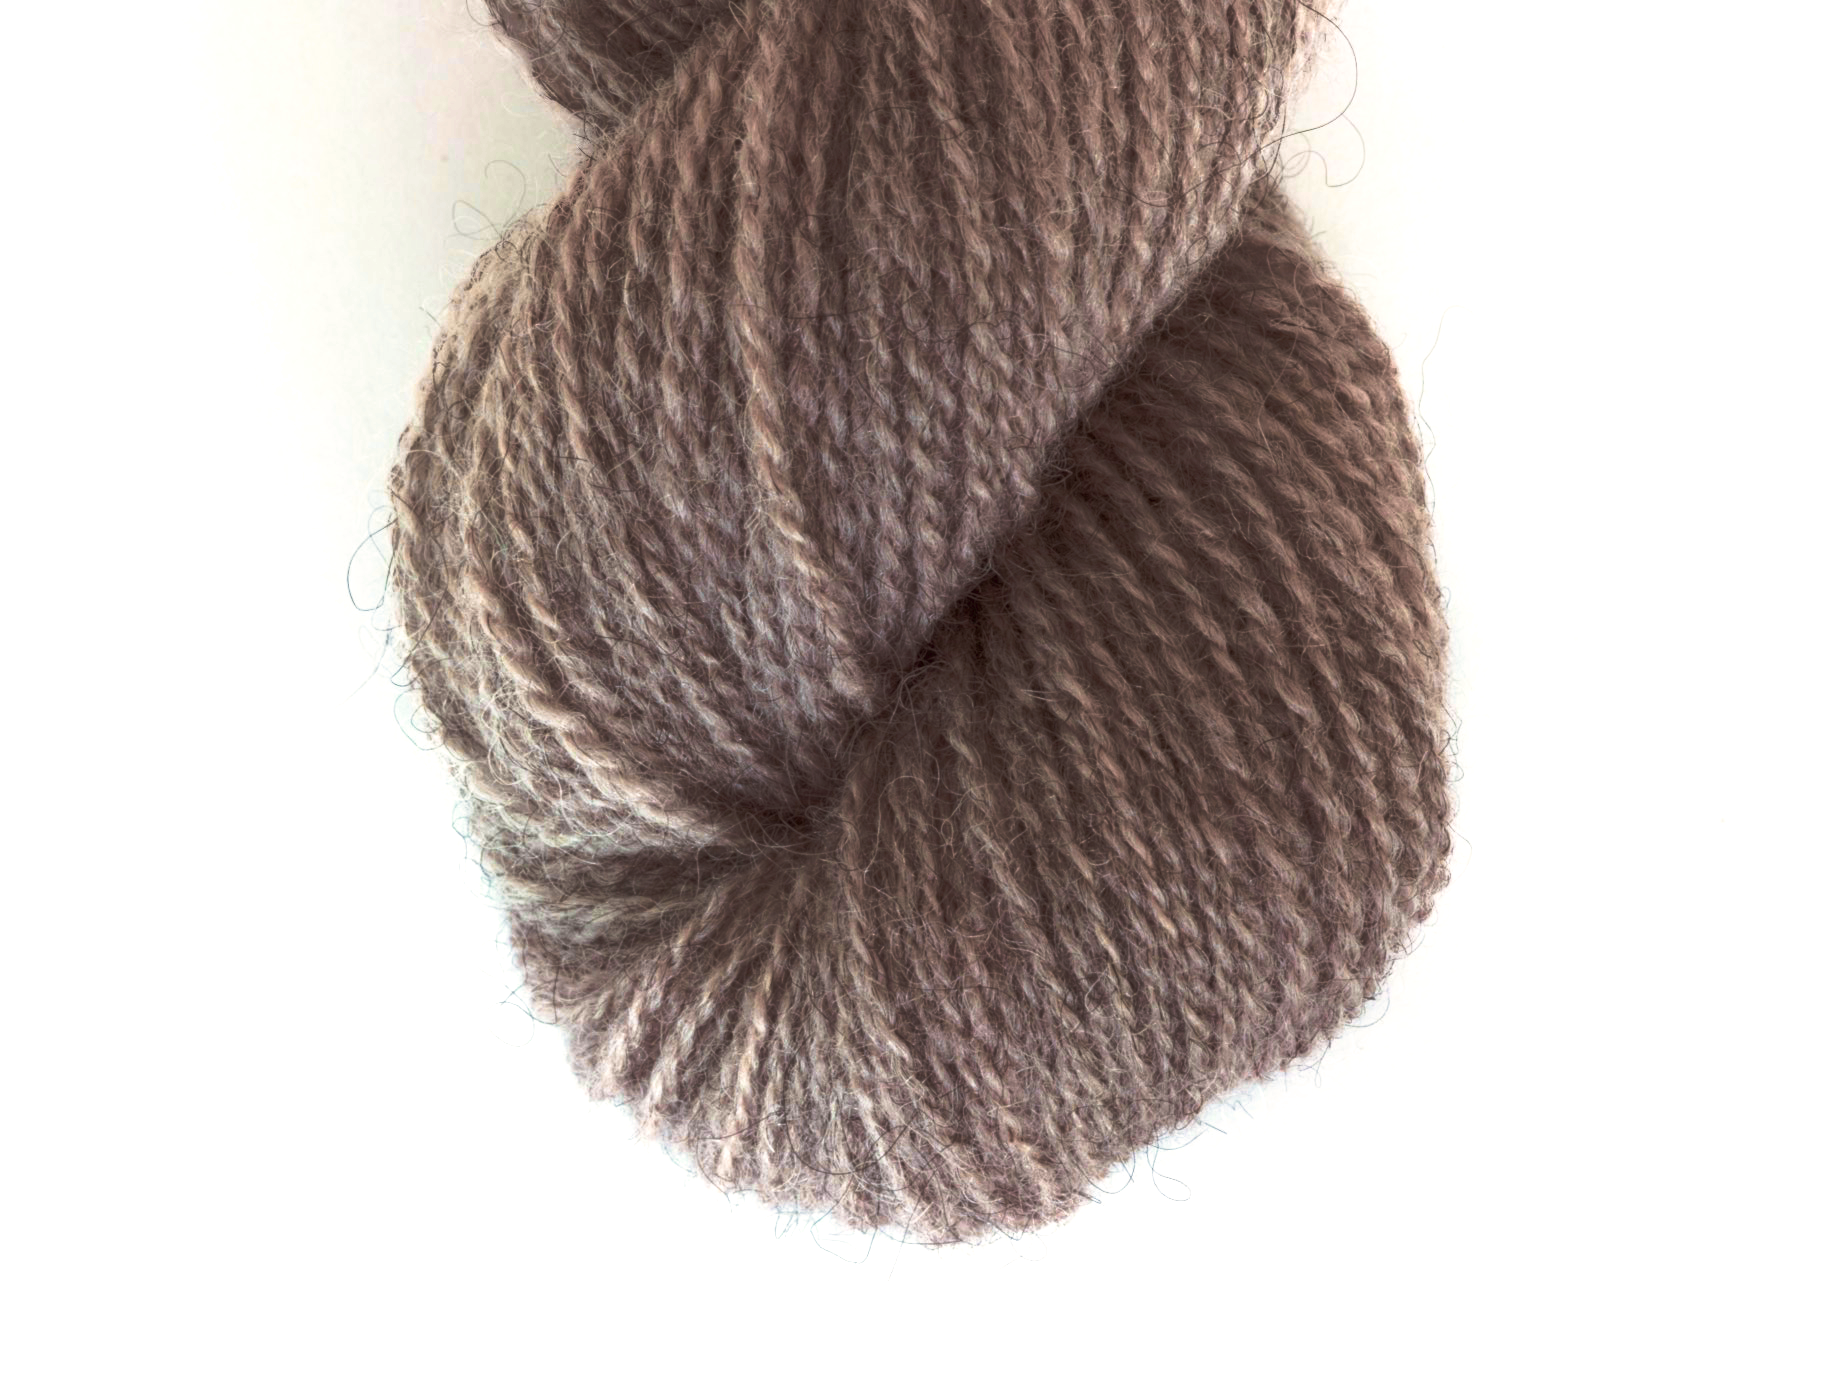 Bohus Stickning garn yarn BS 115 natural brown wool